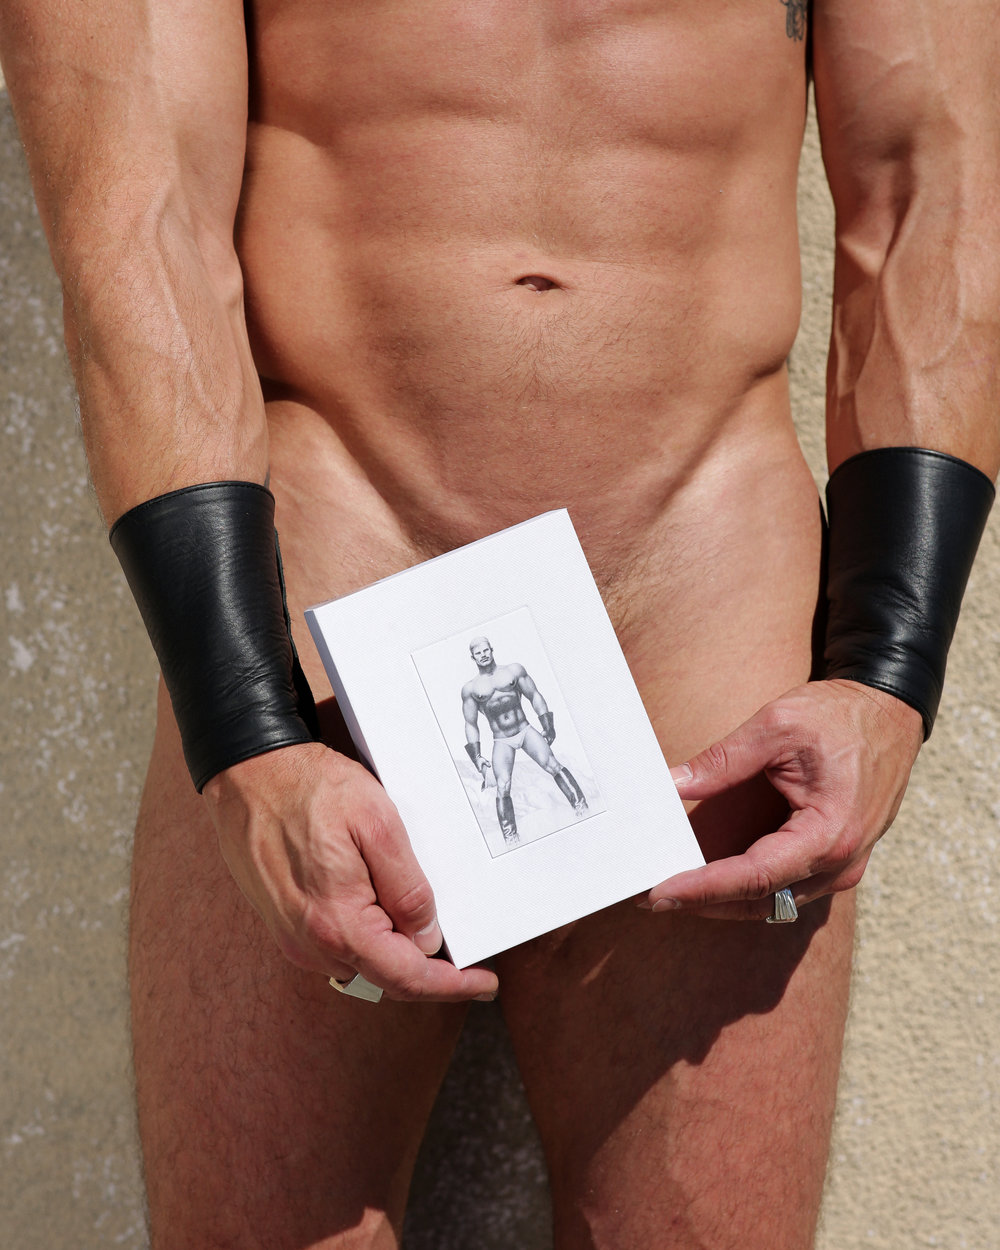 TOM OF FINLAND - LICENSING INQUIRIESINFO@CULTURE-EDIT.COM